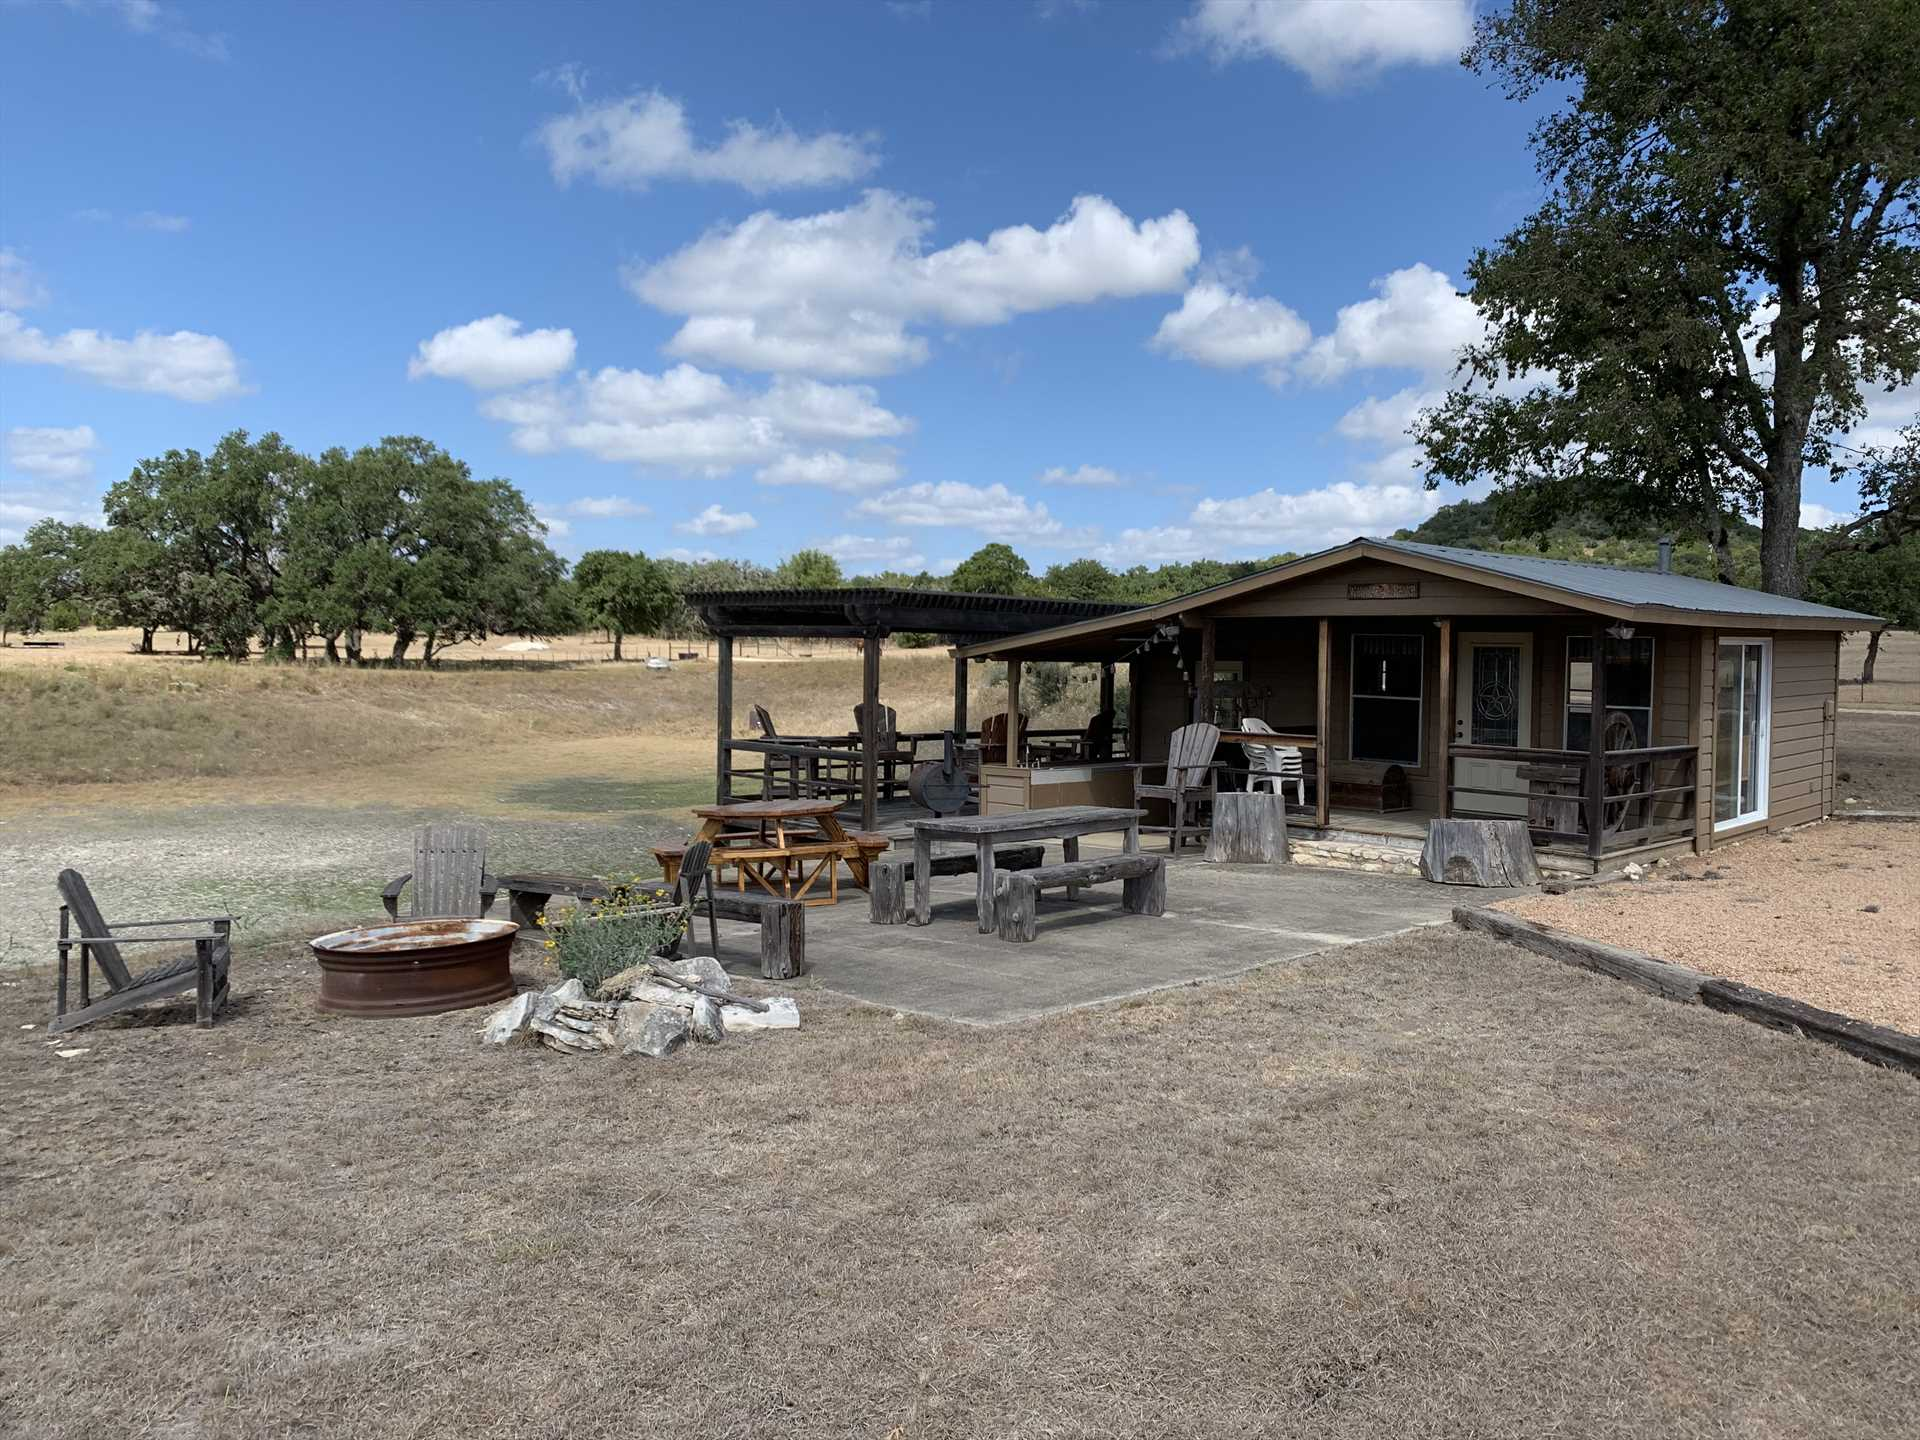 All guests at Tabasco Ranch are invited to enjoy the shared pavilion on the property. It's a wonderful spot for cookouts and socializing!